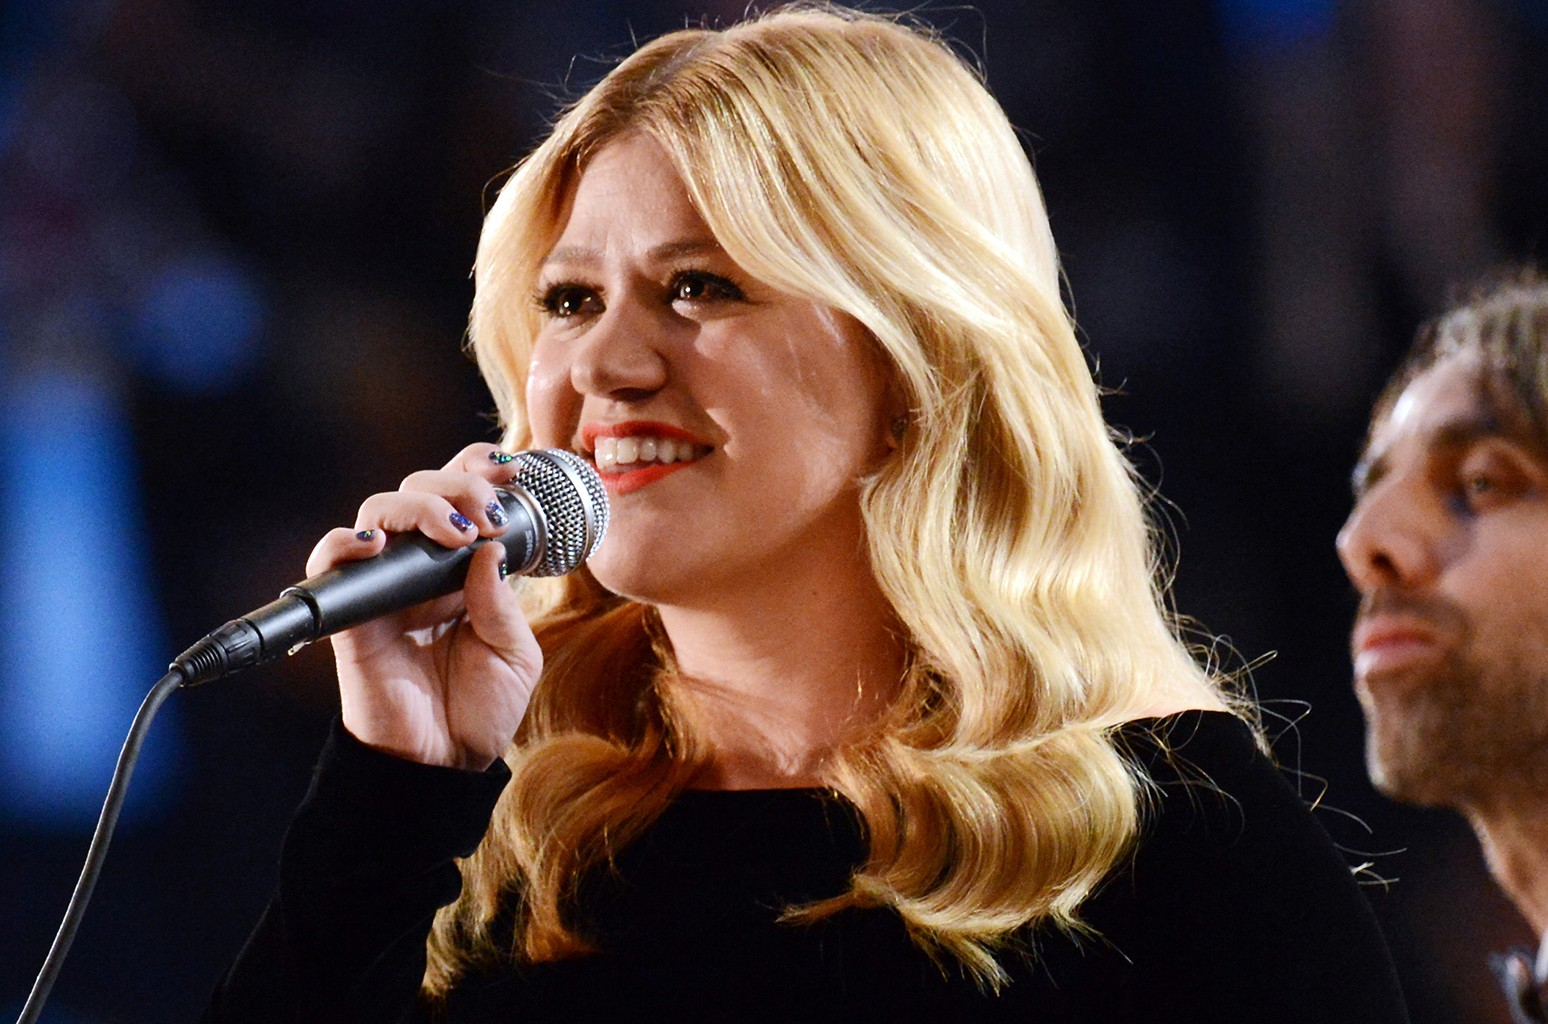 Kelly Clarkson performs at the 55th Annual Grammy Awards